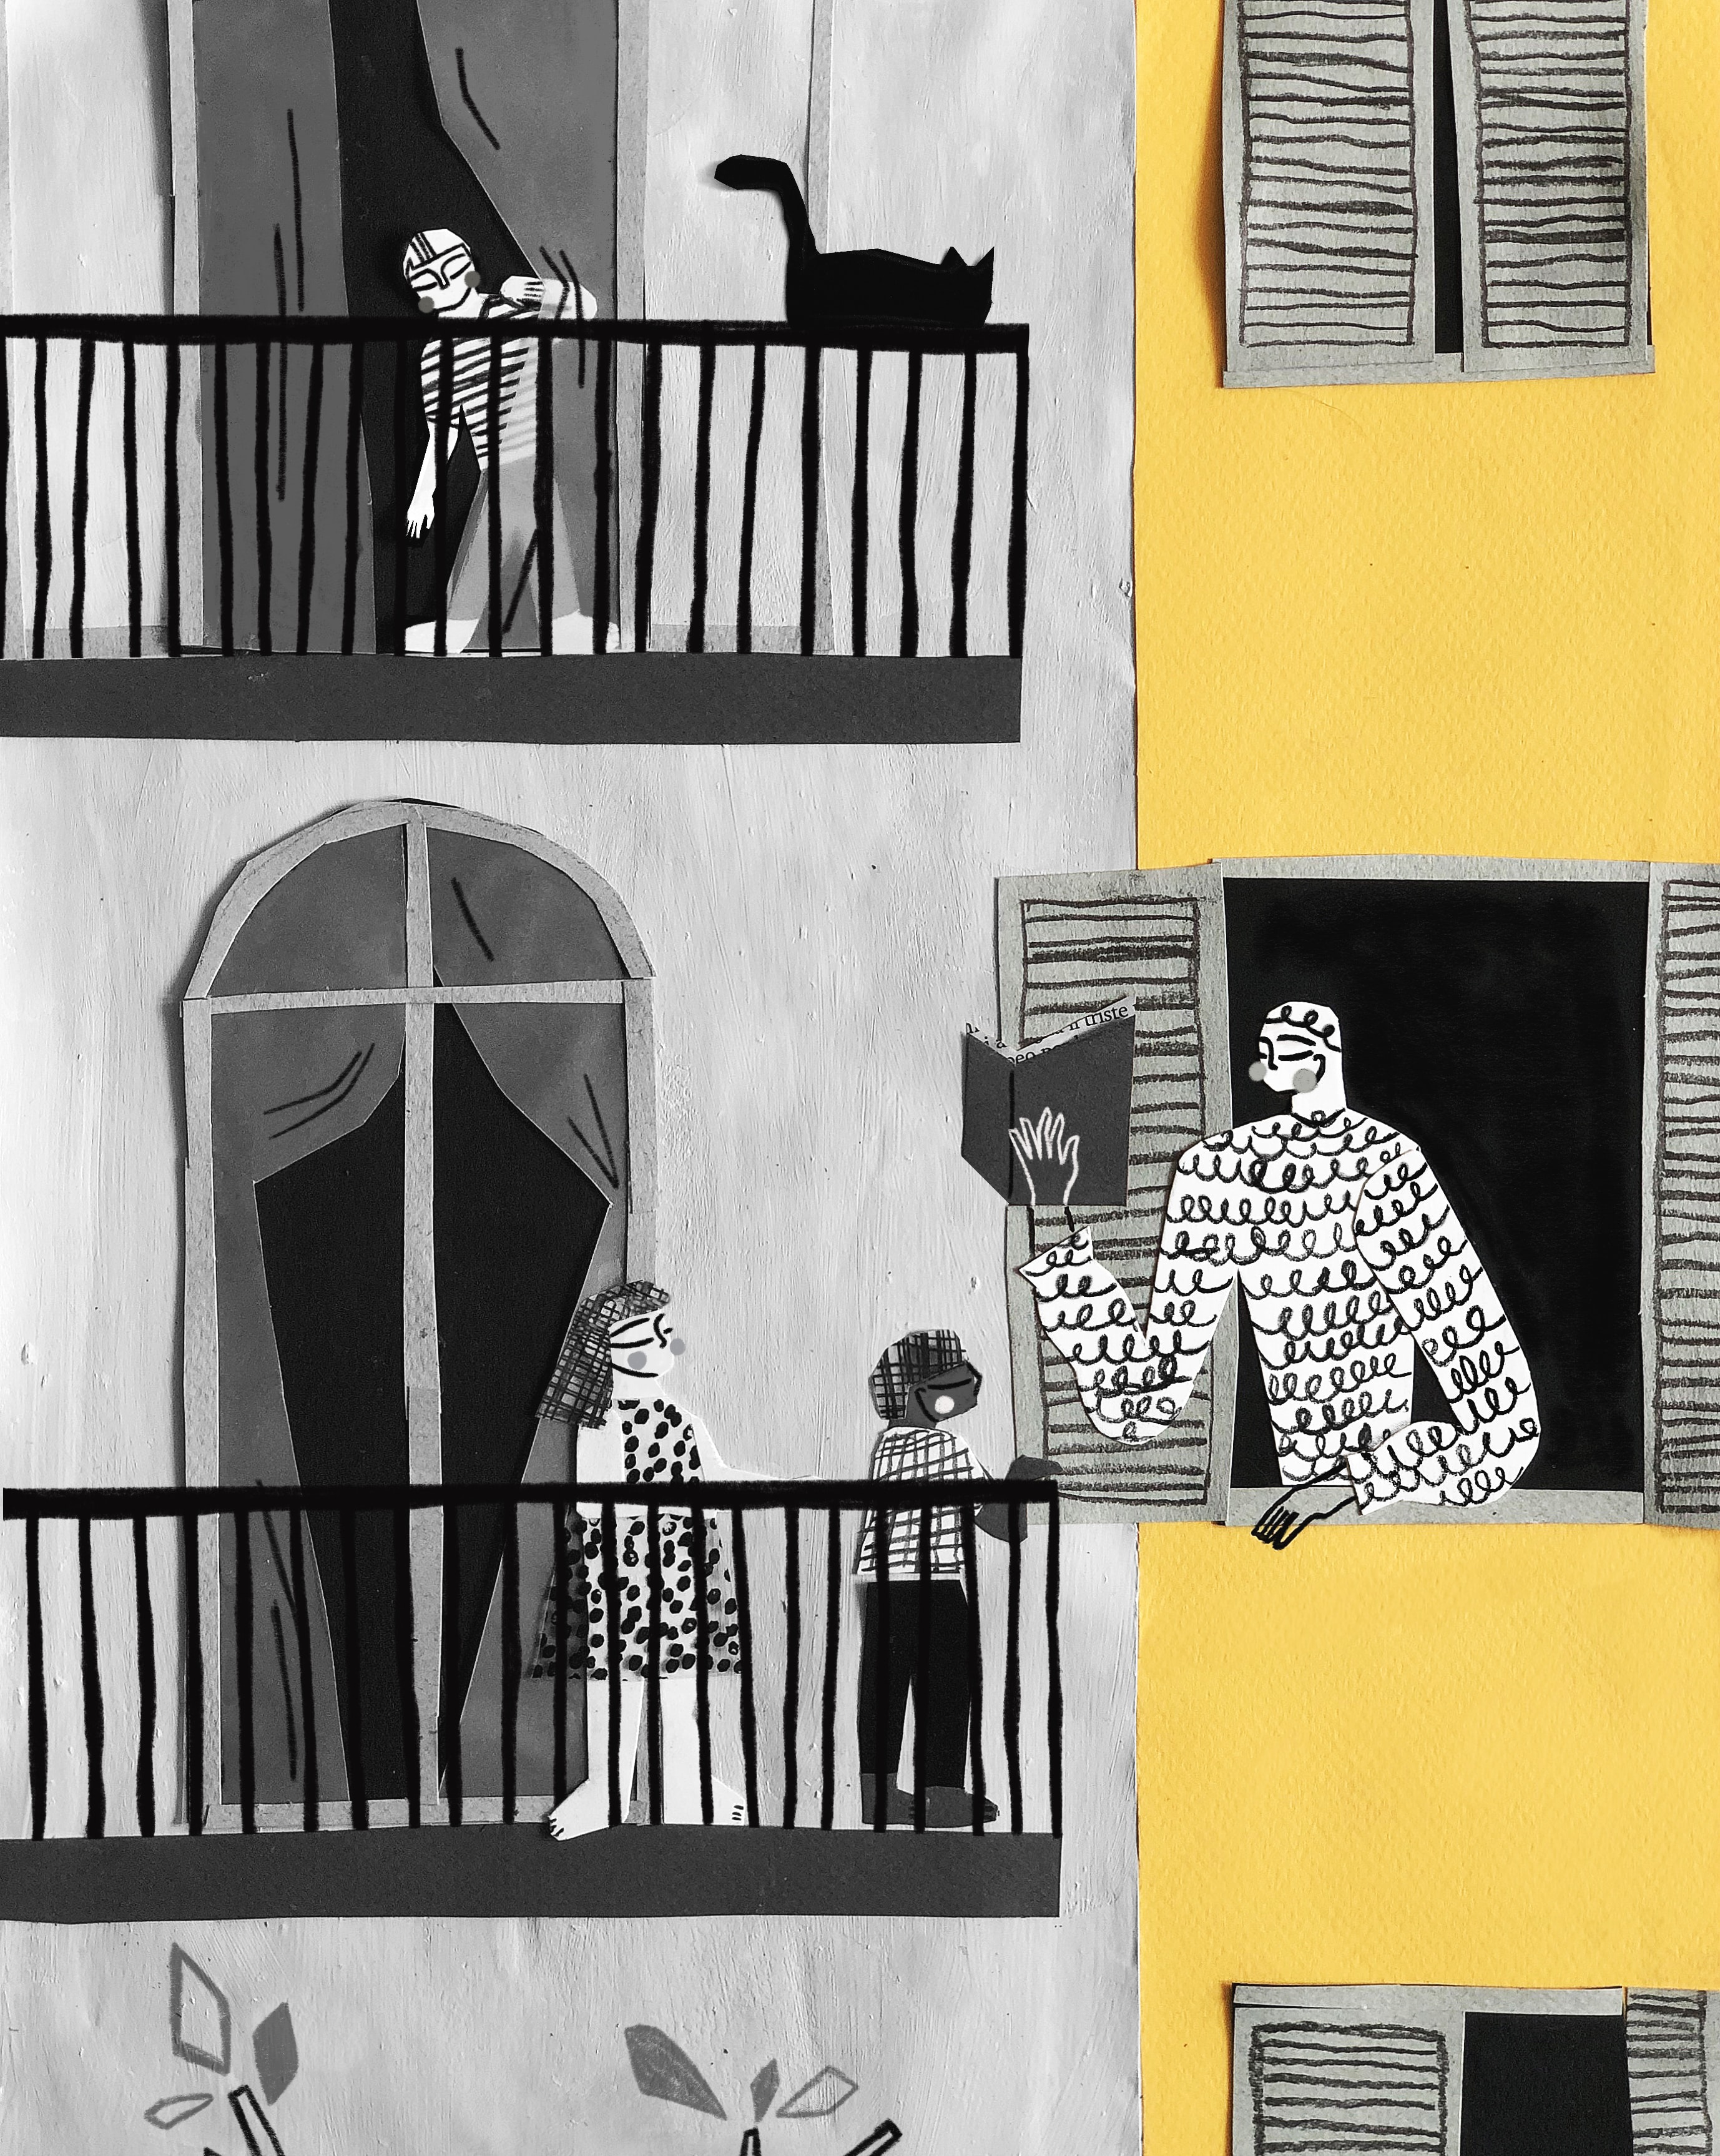 The kind neighbour. This illustration depicts how kindness between neighbours has gotten stronger now that we're facing the Covid-19 confinement. The artwork aims to honour the empathy we're feeling for one another. Image created by Fernando Cobelo. Submitted for United Nations Global Call Out To Creatives - help stop the spread of COVID-19. Courtesy Unsplash